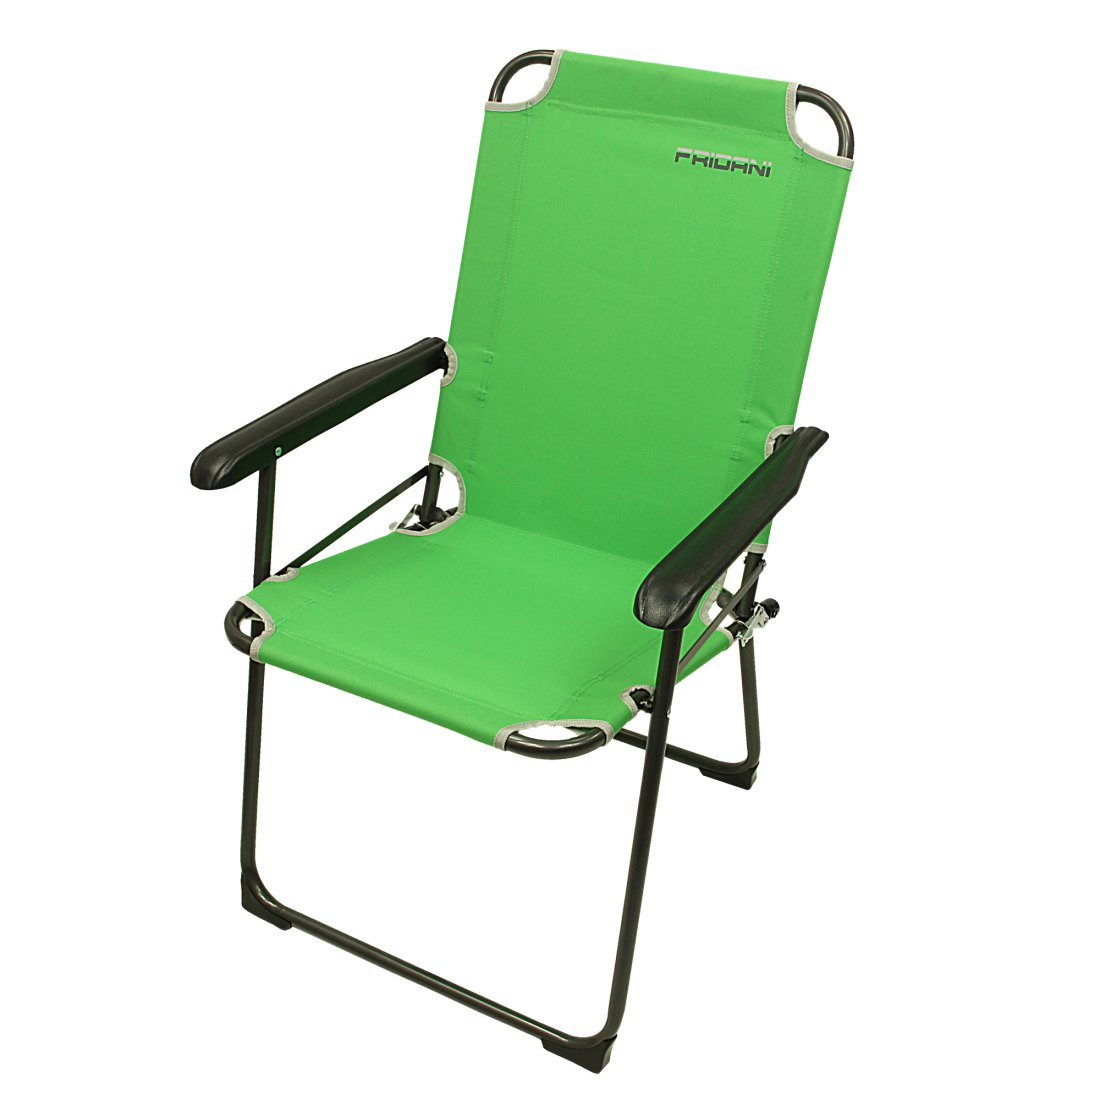 Fridani Gcg 920 Camping Chair With Arm Rests Compact Foldable 3300g Outdoor Furniture Chairs Folding Chairs